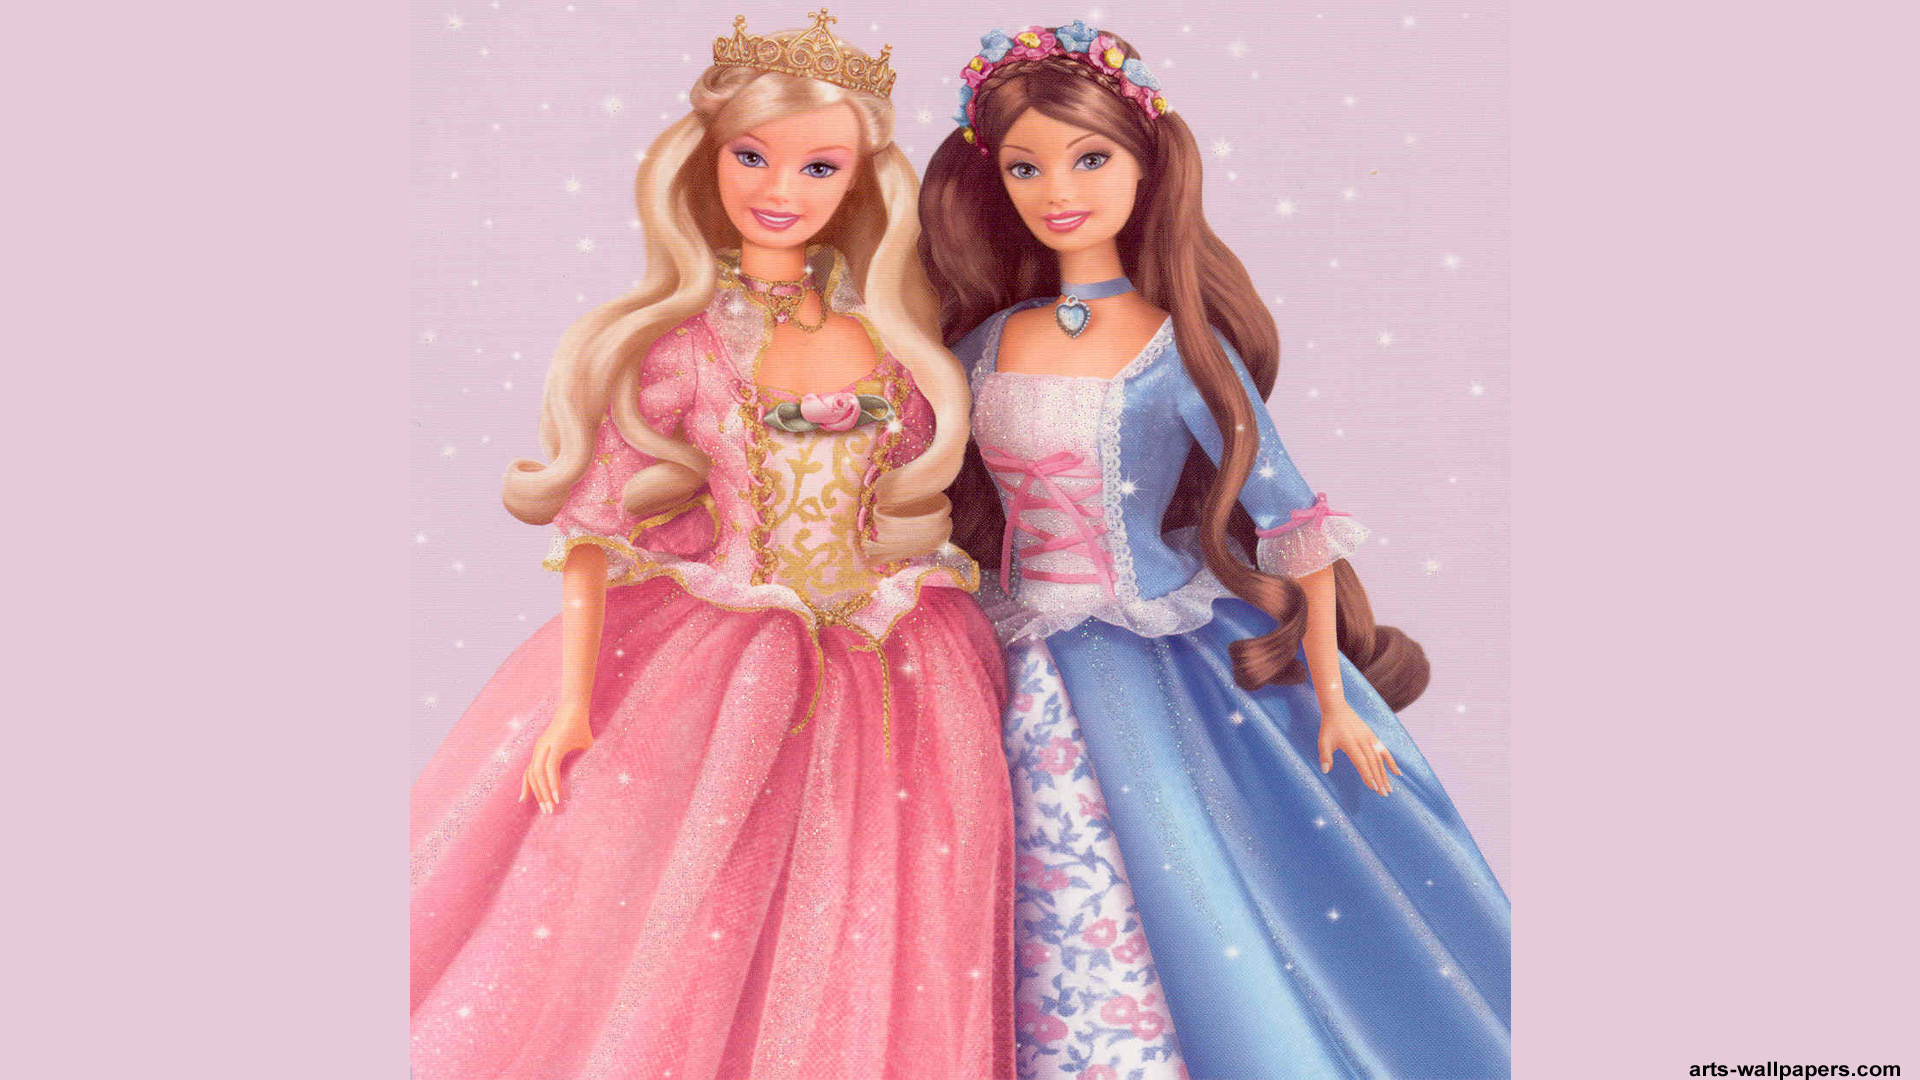 Barbie As The Princess And The Pauper Wallpaper Barbie As The Princess And The Pauper